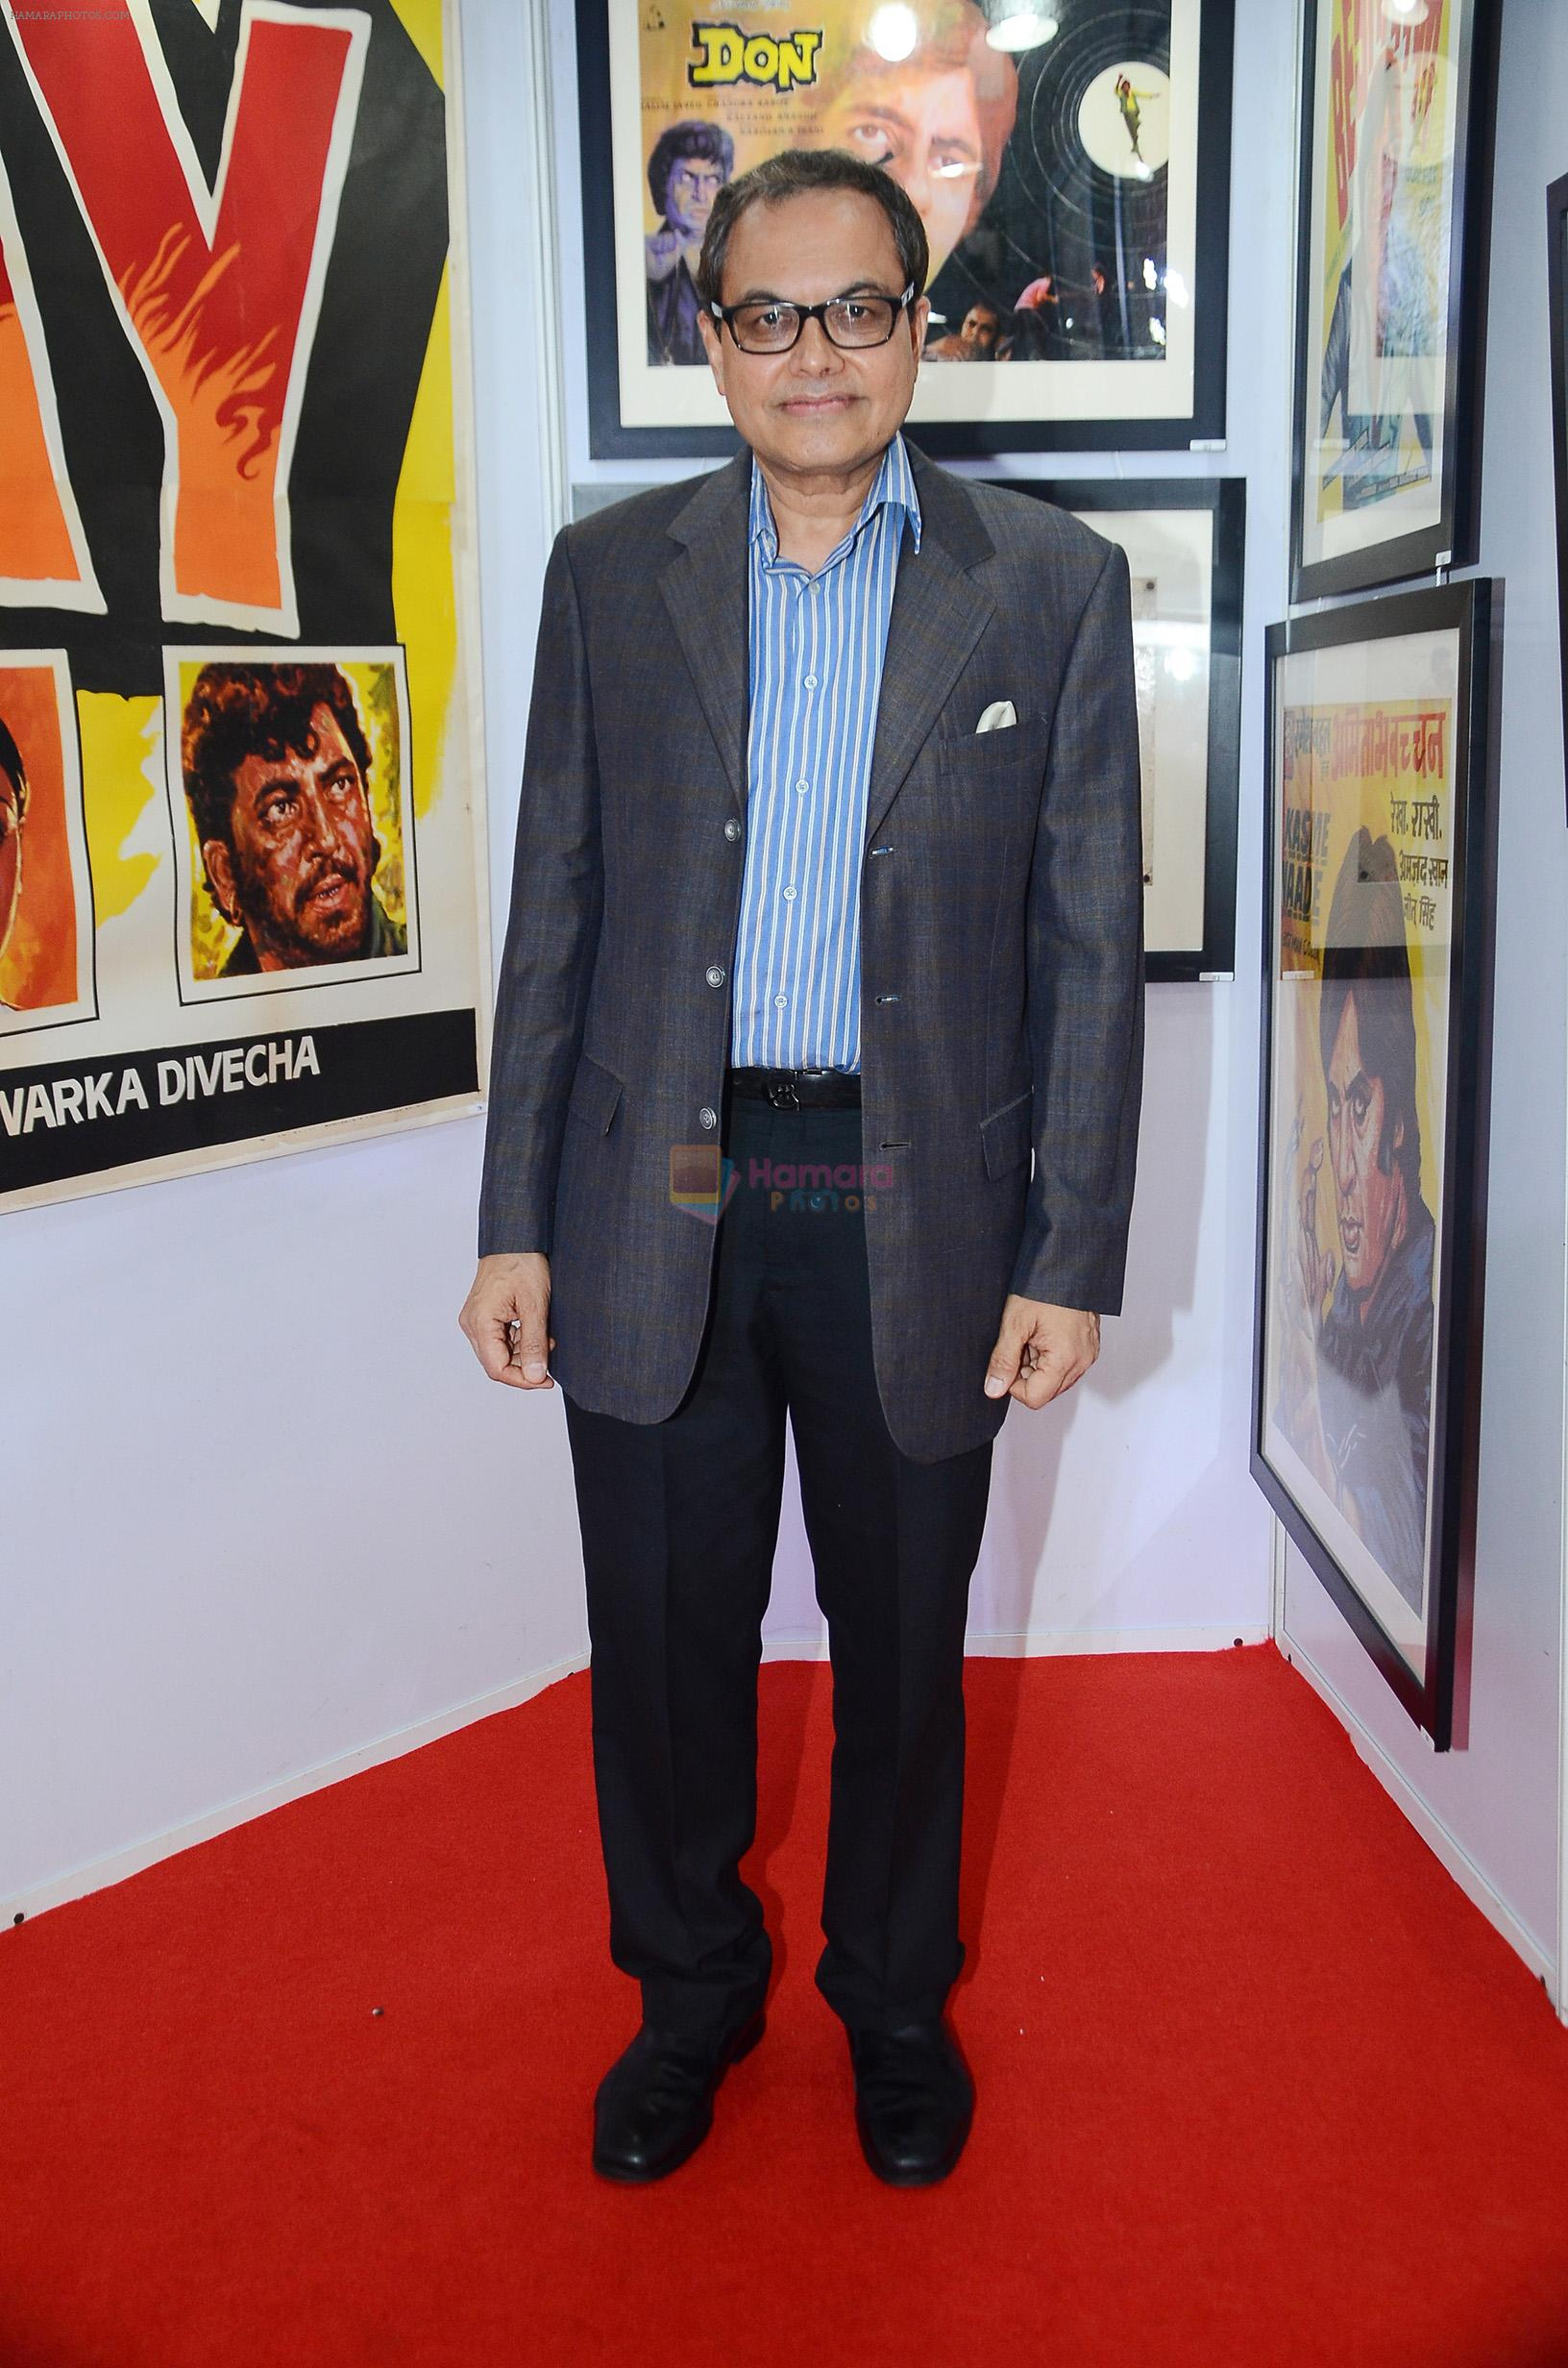 Ajoykant Ruia at the opening preview of Osian's The Greatest Indian Show on Earth 2 - Vintage Film Memorabilia, Publicity Materials & Arts Auction